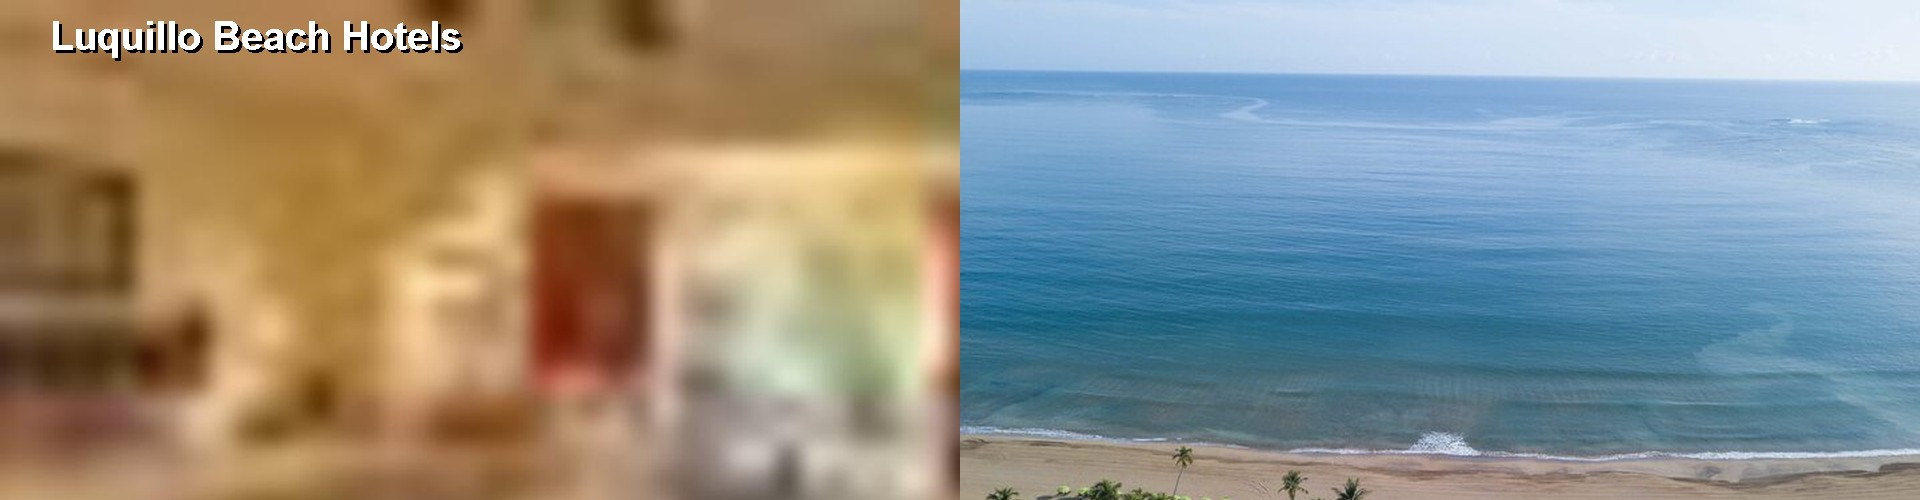 5 Best Hotels Near Luquillo Beach